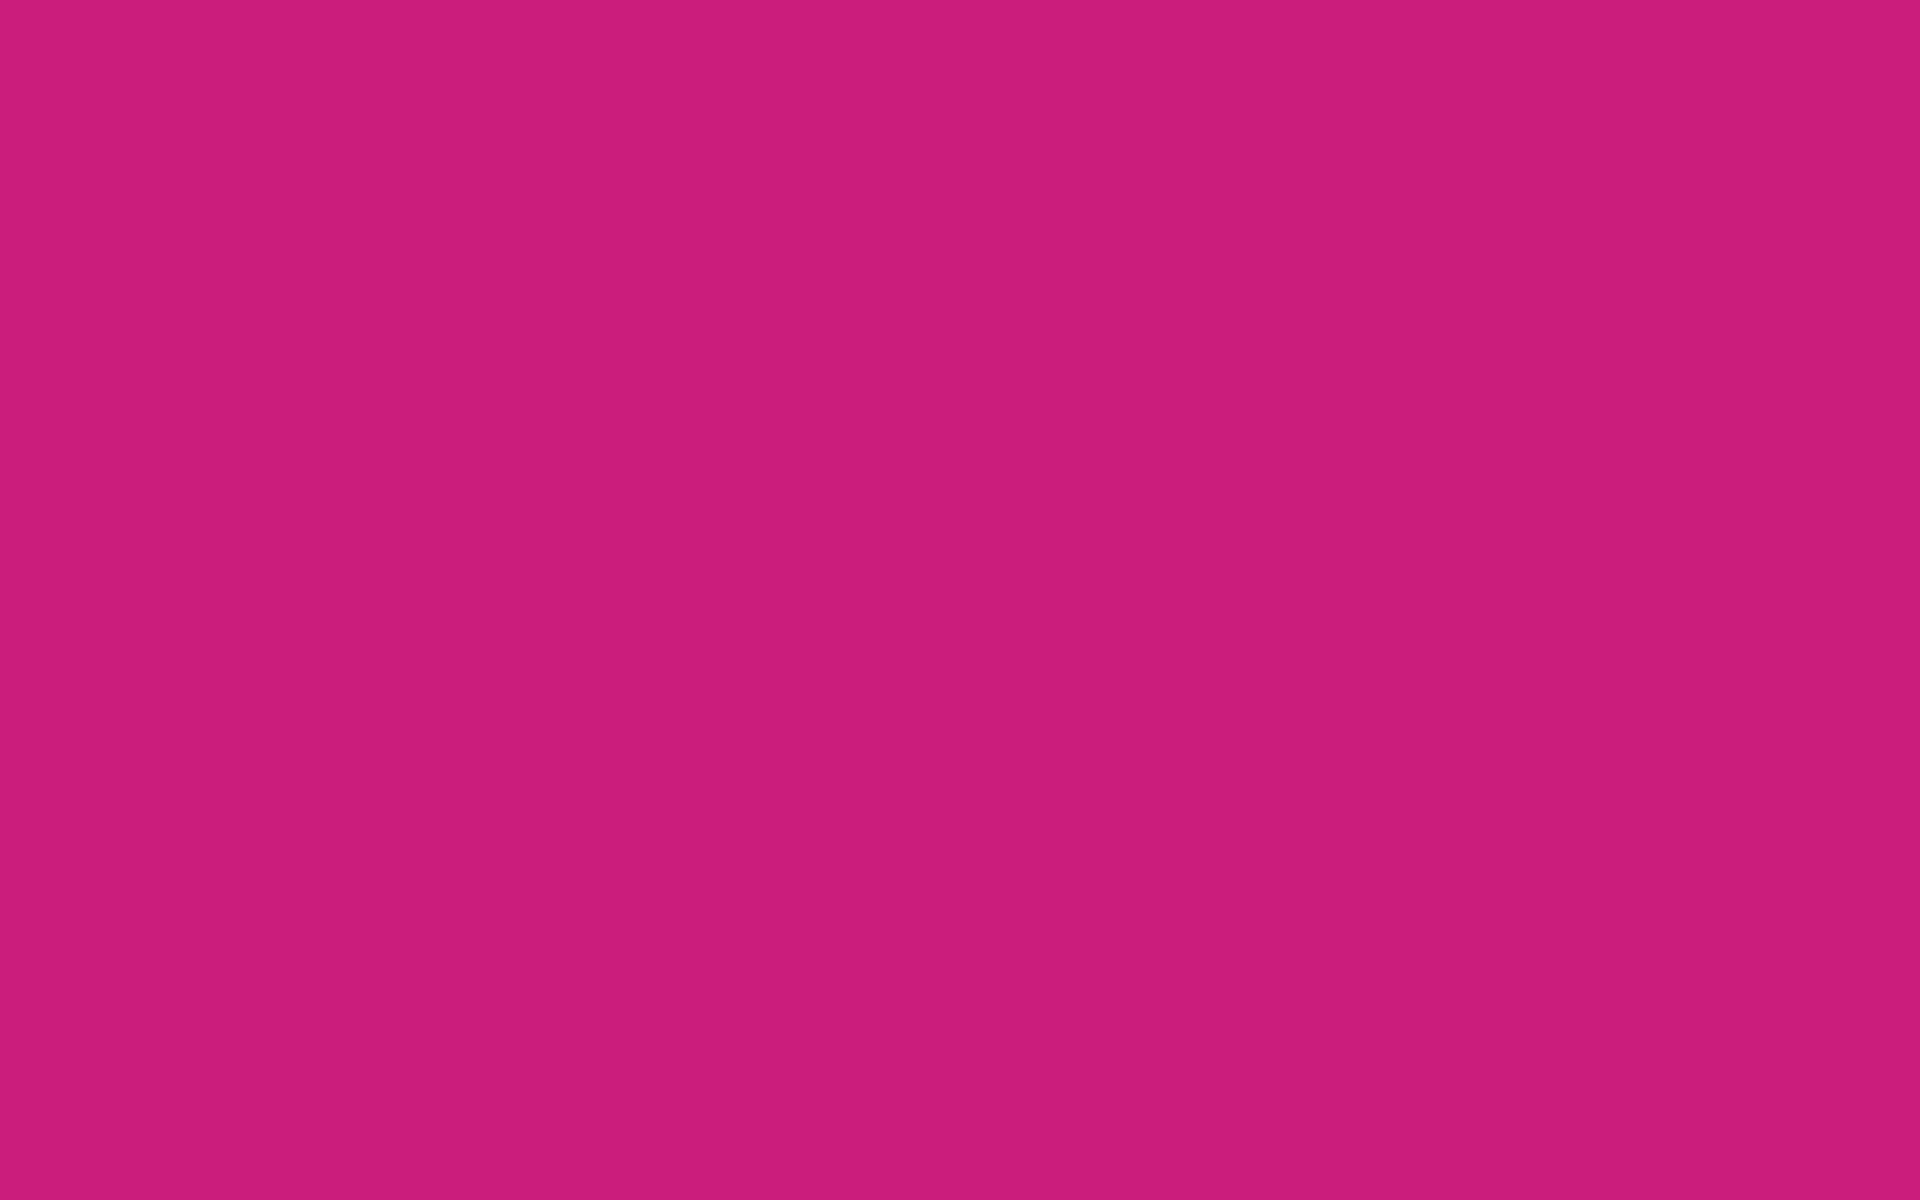 1920x1200 Magenta Dye Solid Color Background